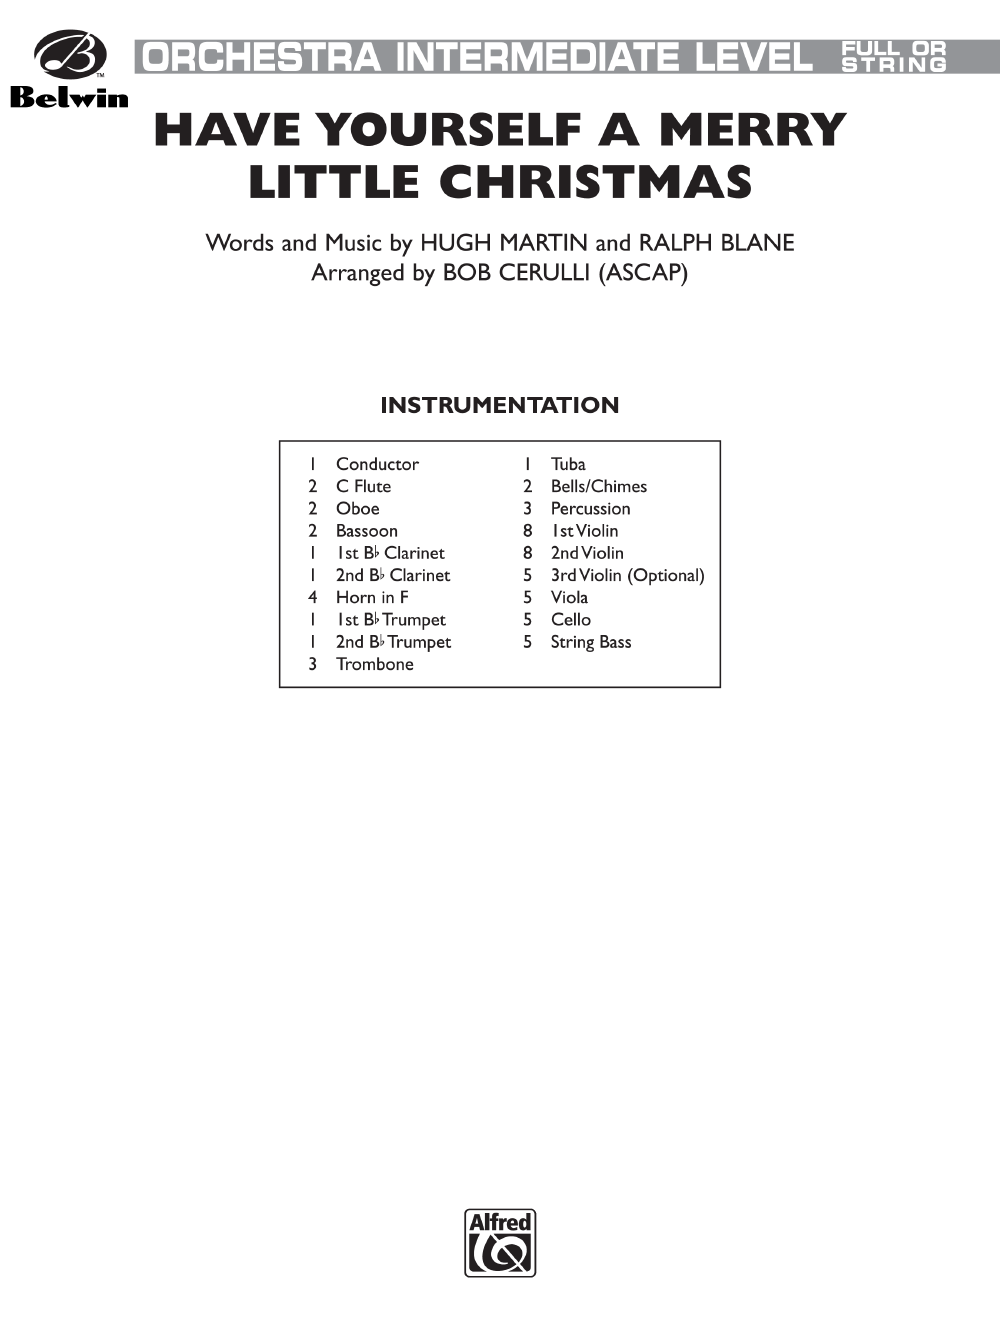 Have Yourself A Merry Little Christmas Violin Sheet Music.Have Yourself A Merry Little Christmas Arr Bob C J W